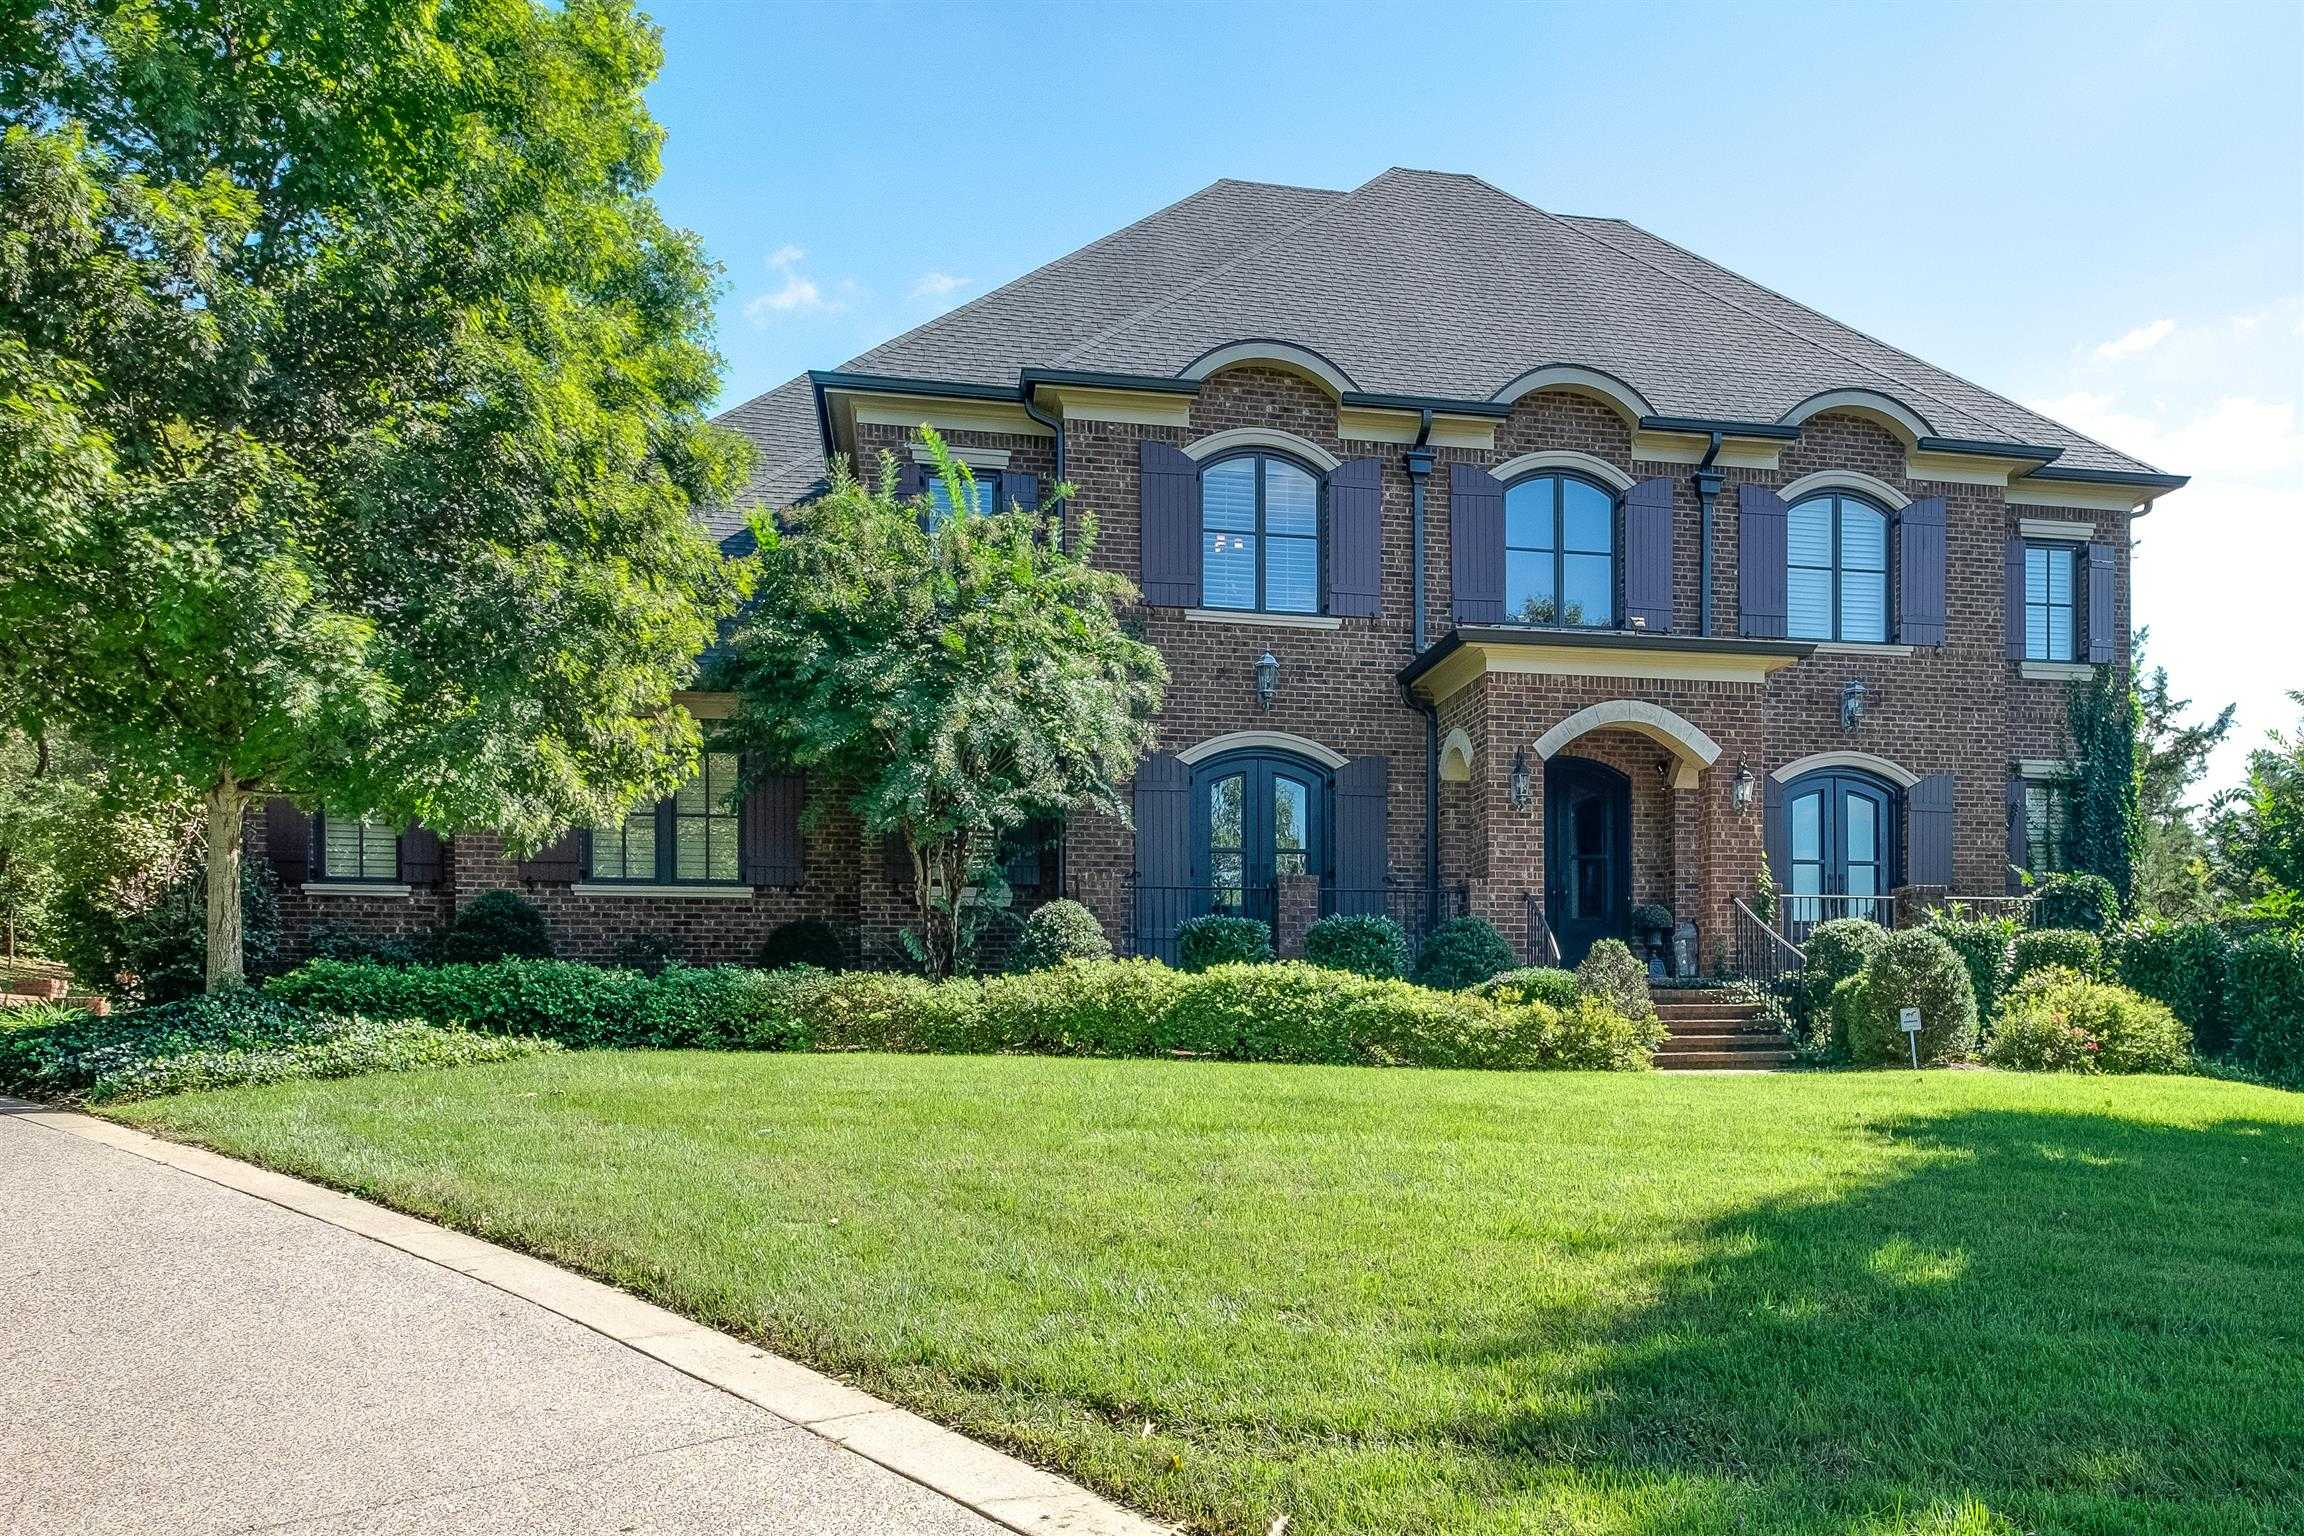 $1,639,900 - 6Br/7Ba -  for Sale in Annandale Sec 4, Brentwood